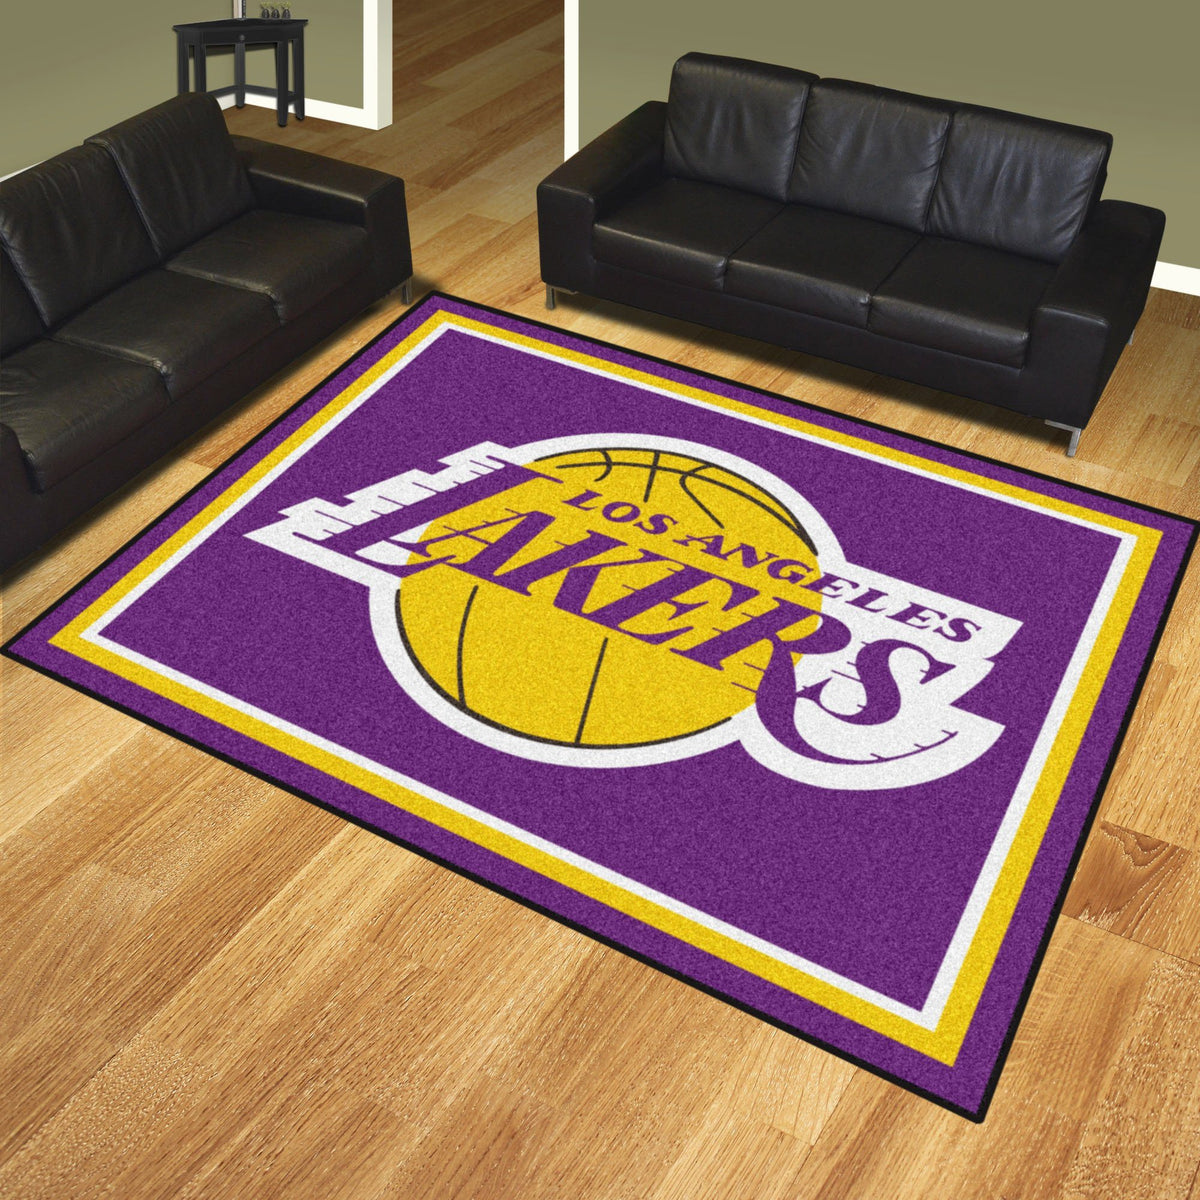 NBA - 8' x 10' Rug NBA Mats, Plush Rugs, 8x10 Rug, NBA, Home Fan Mats Los Angeles Lakers